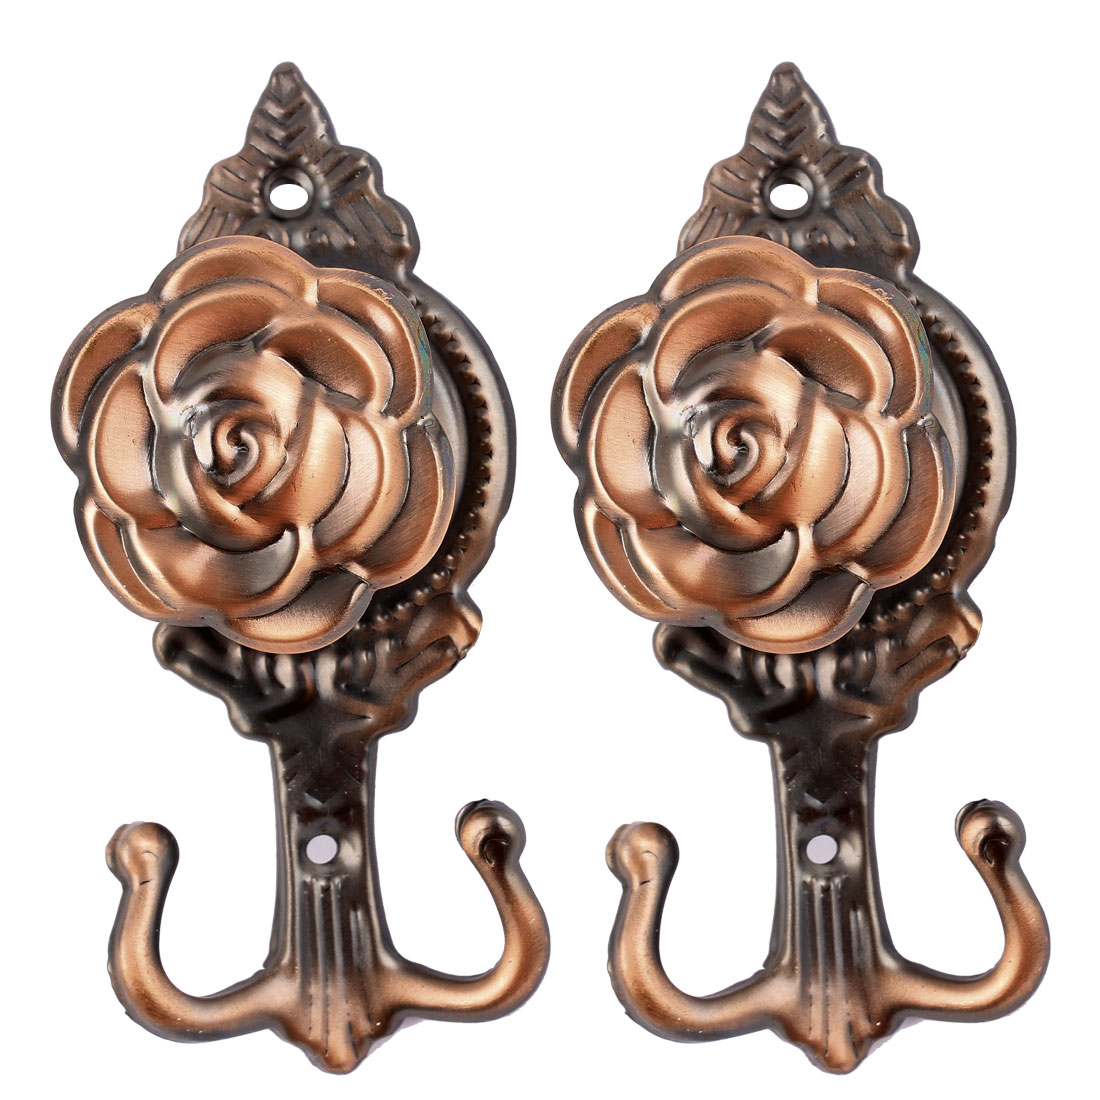 Copper Tone Rose Shape Curtain Hooks Wall Tassel Tieback Holder Hanger 2pcs